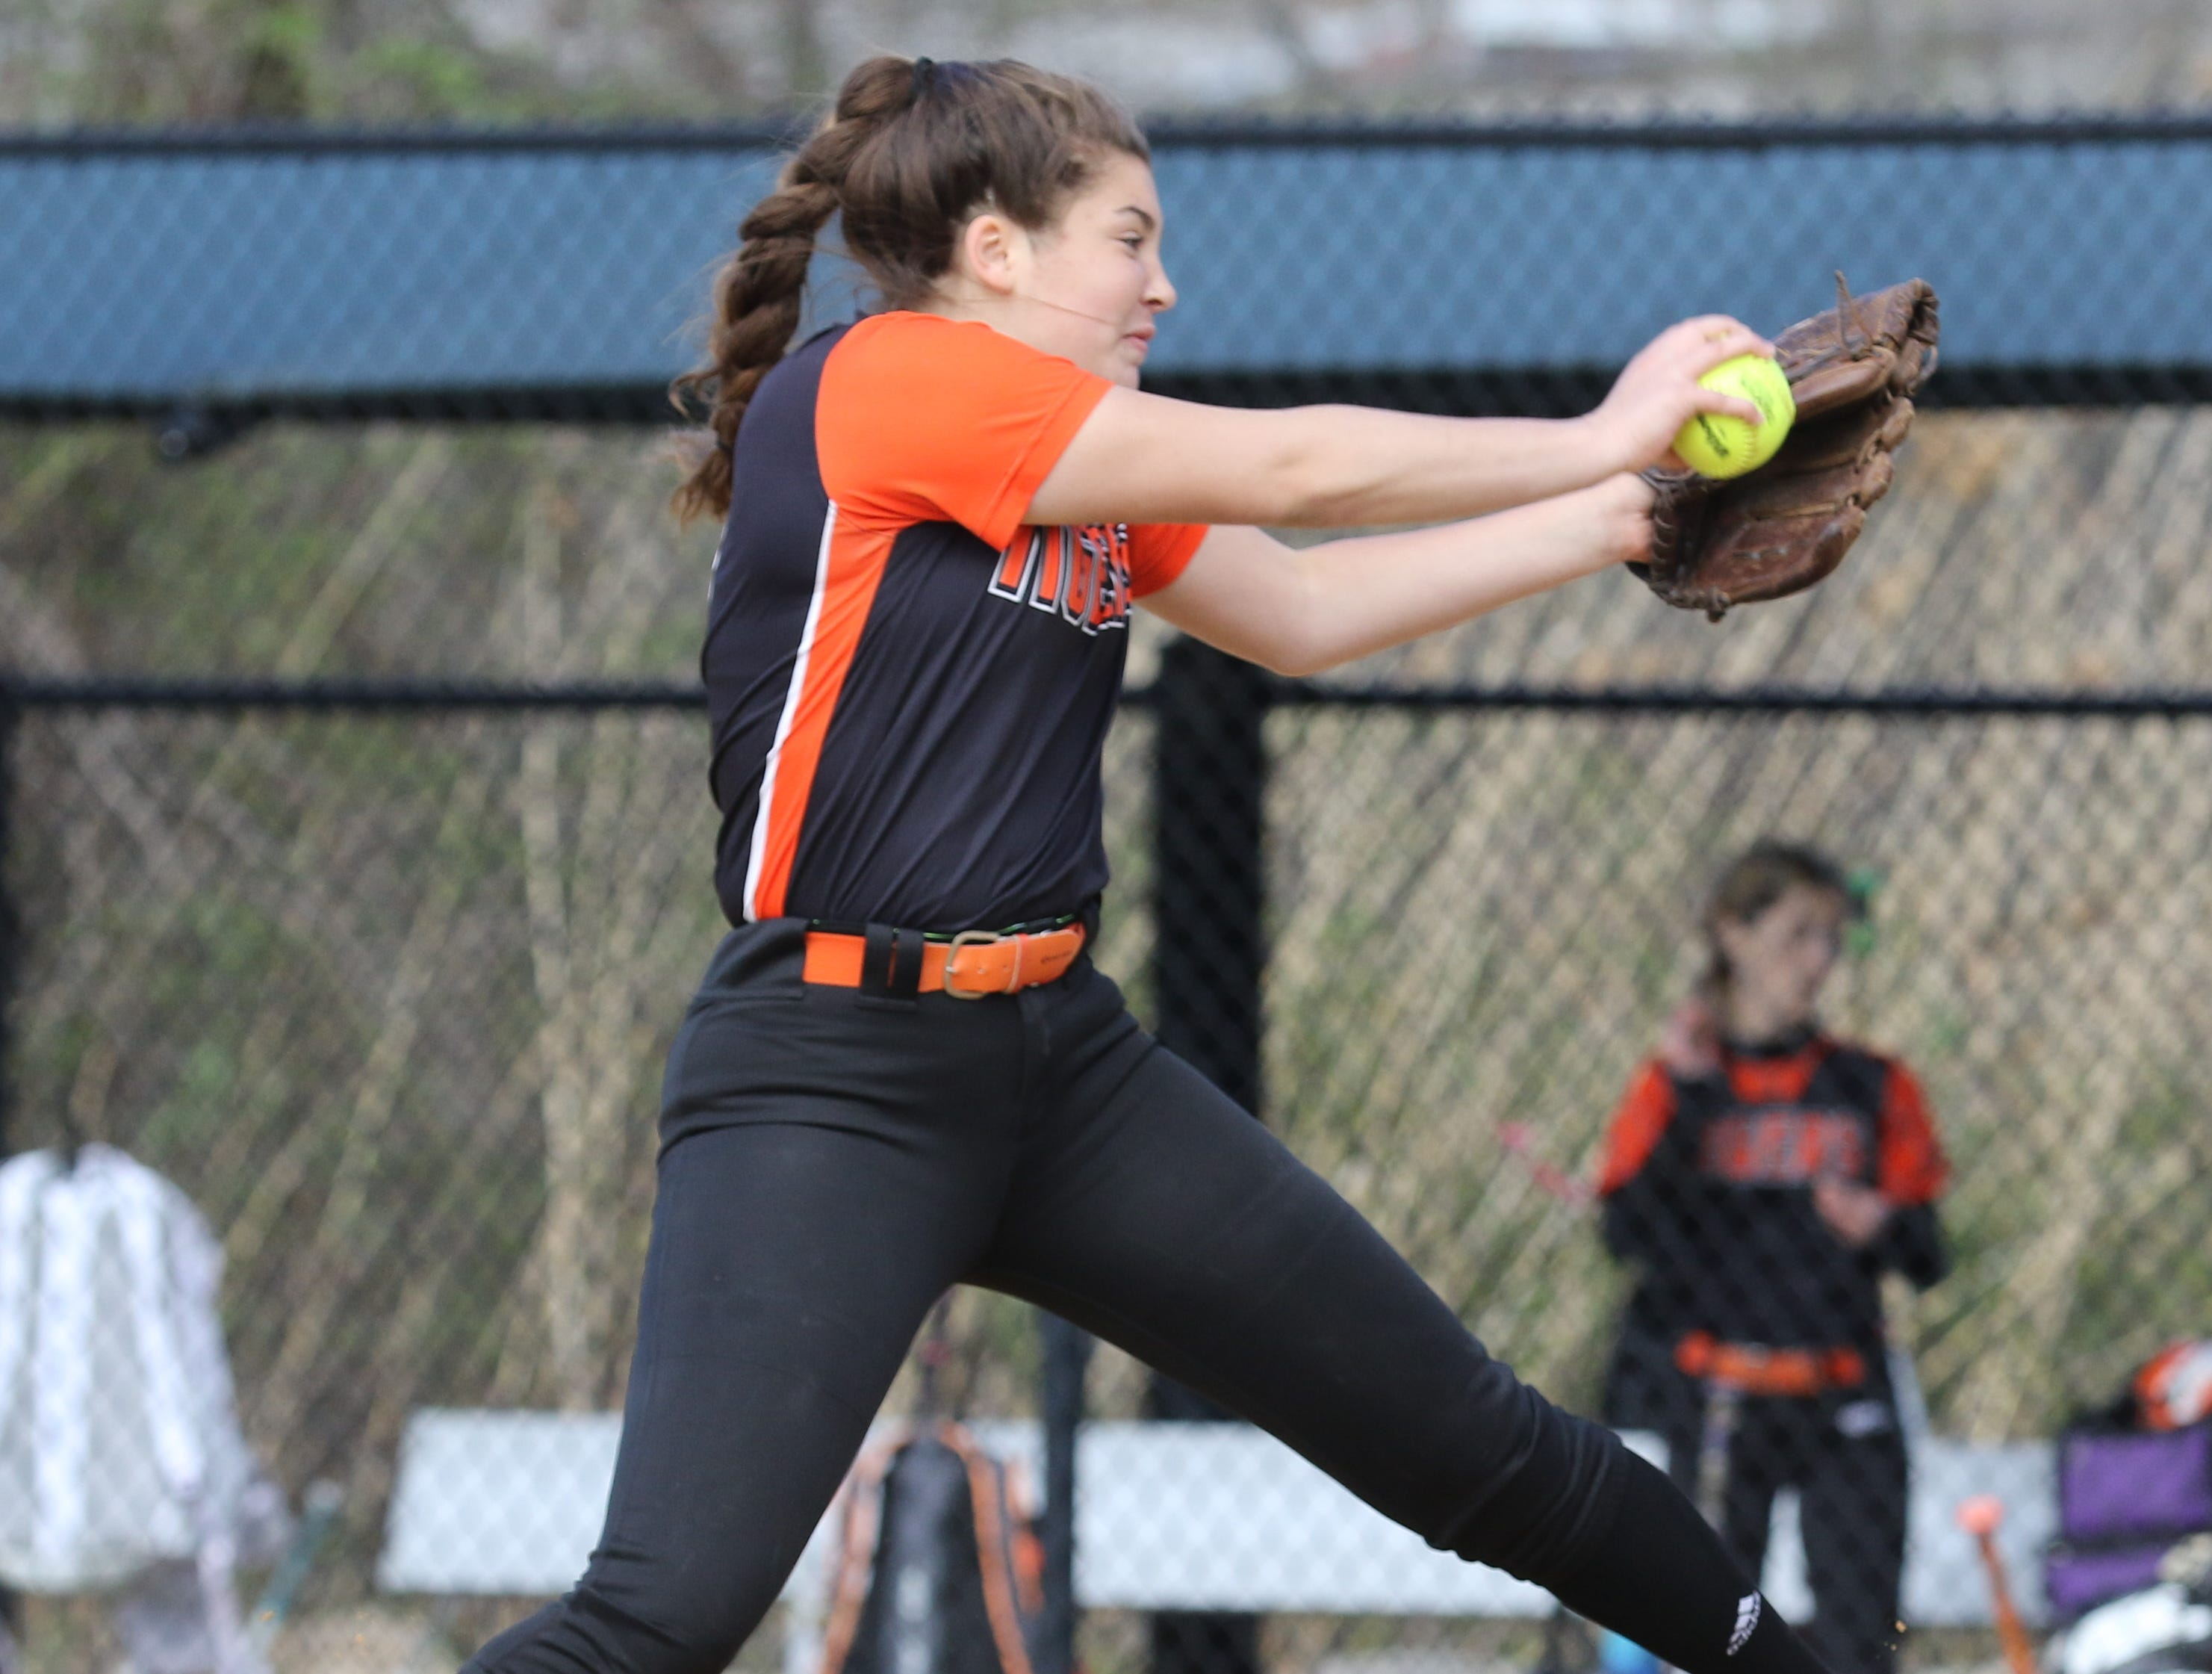 Hackettstown pitcher Andrea McMahon in her wind up in the second inning.